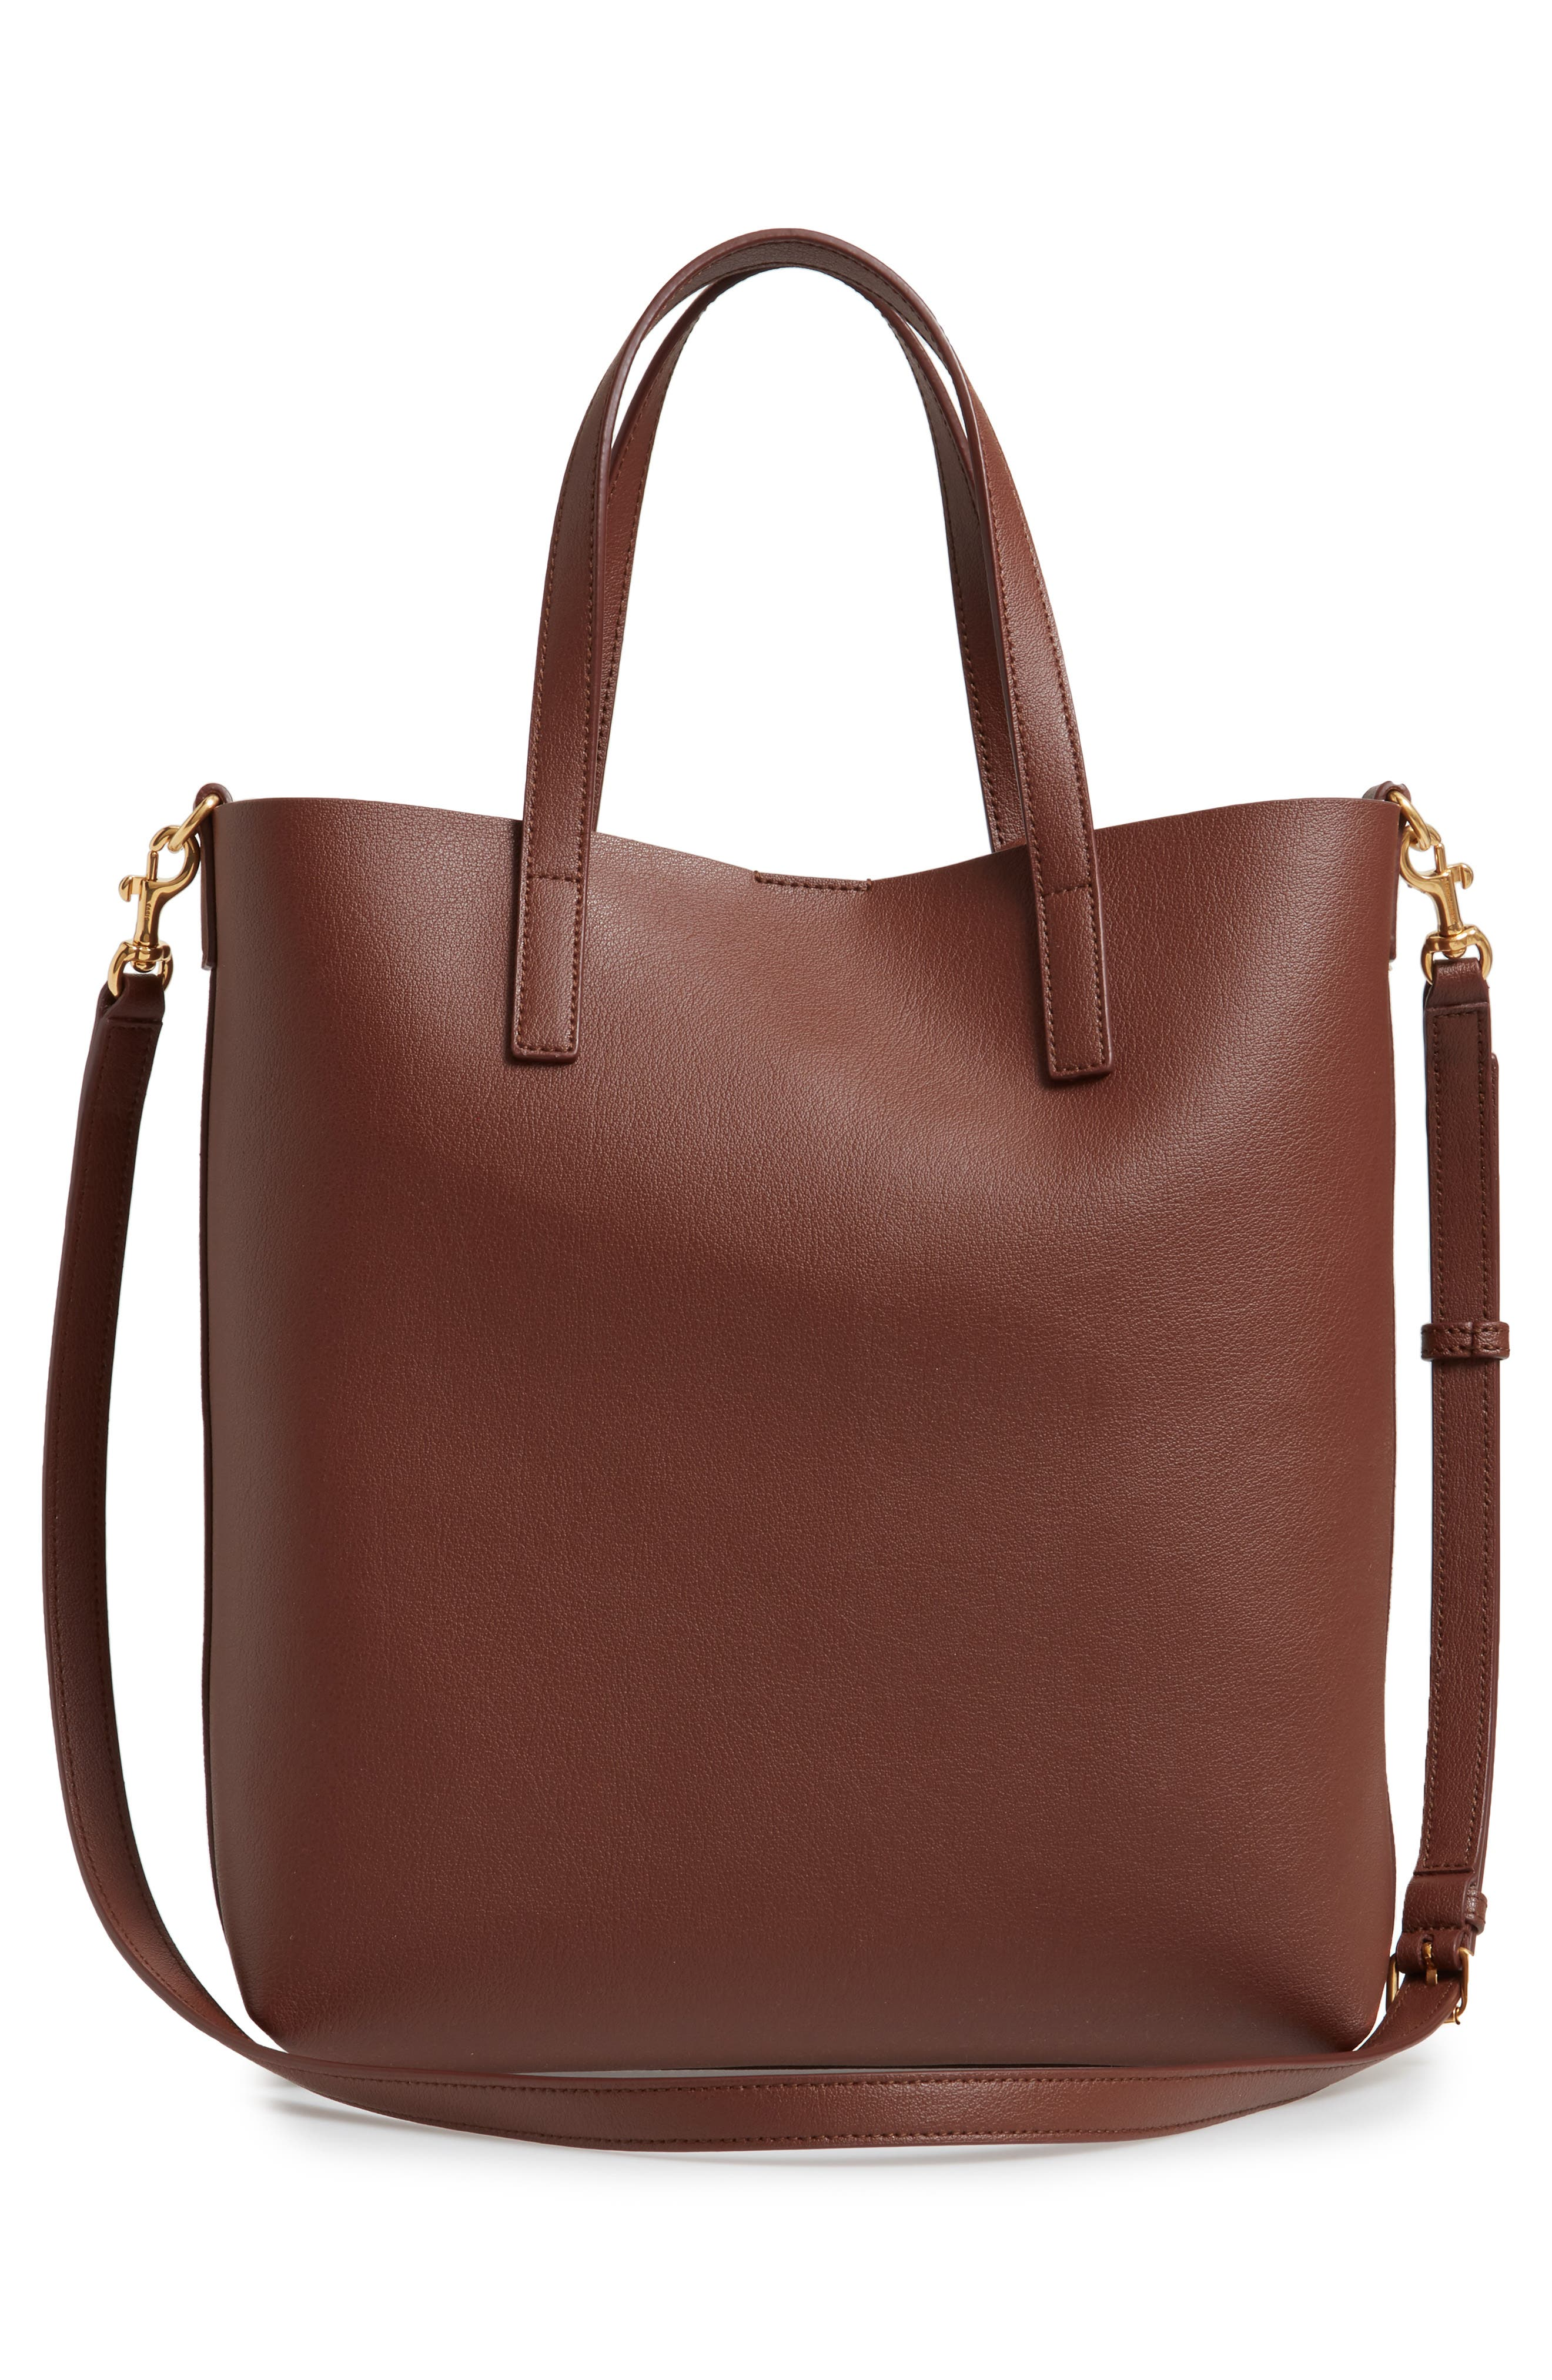 SAINT LAURENT, Toy Shopping Leather Tote, Alternate thumbnail 3, color, BRANDY OLD